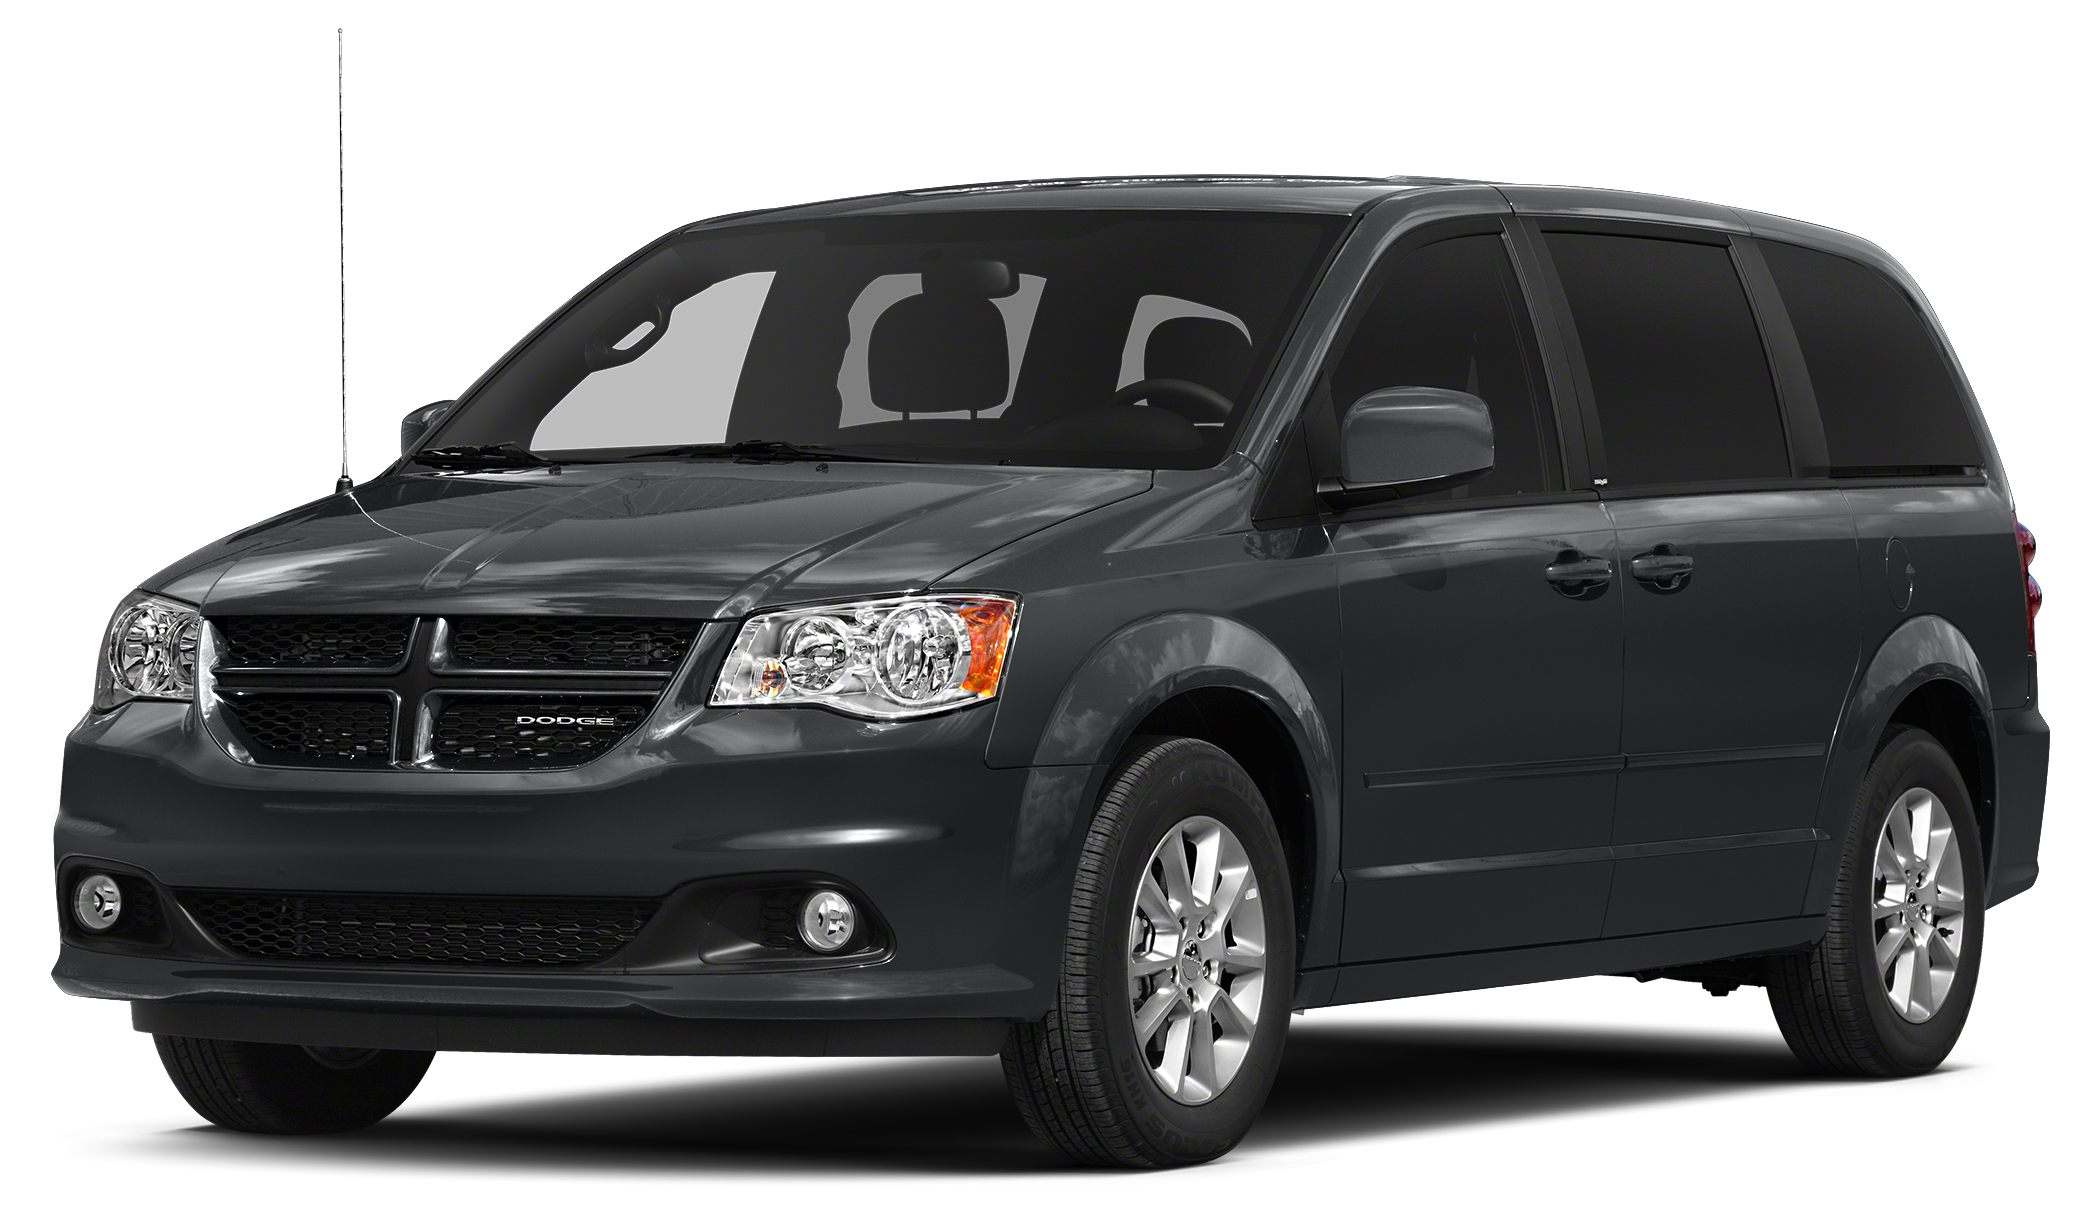 2016 Dodge Grand Caravan RT 2016 Dodge Grand Caravan RT in Granite Crystal Metallic Clearcoat B